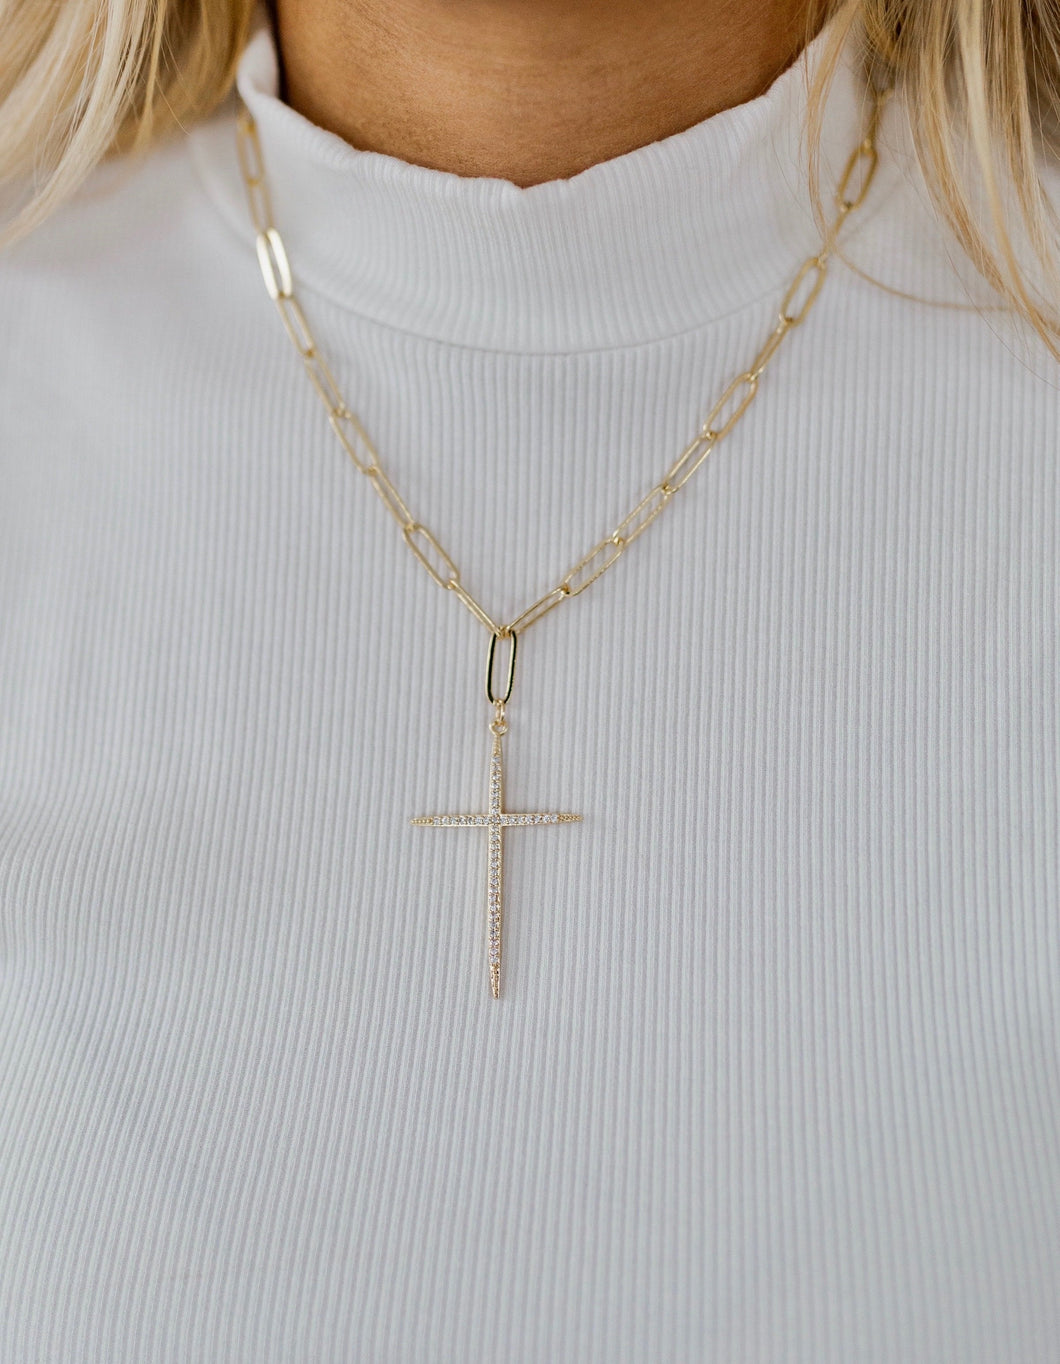 Ash Gold Pave Cross Chain Necklace